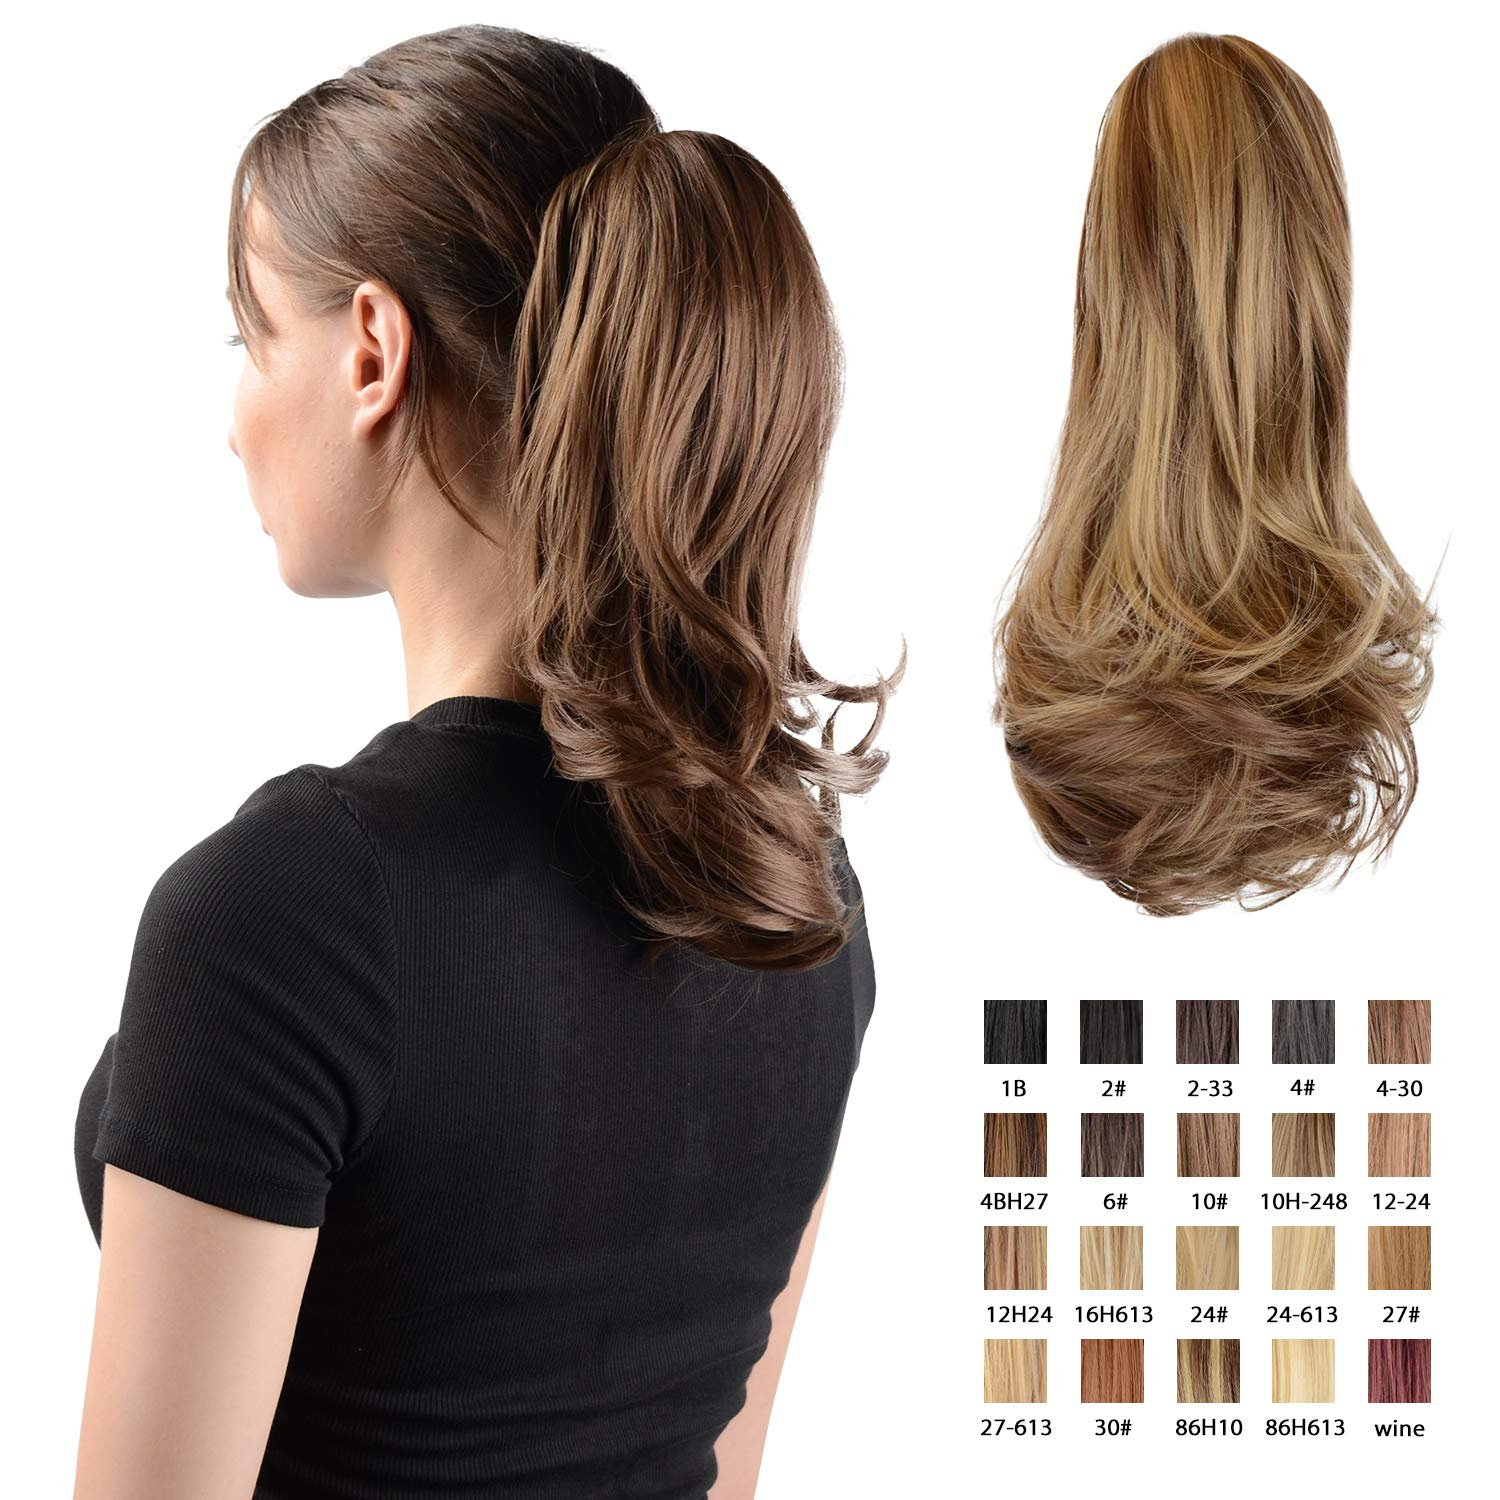 Sofeiyan 13'' Ponytail Extension Long Curly Ponytail Clip in Claw Hair Extension Natural Looking Synthetic Hairpiece for Women (Golden Brown & Light Blonde) by Sofeiyan